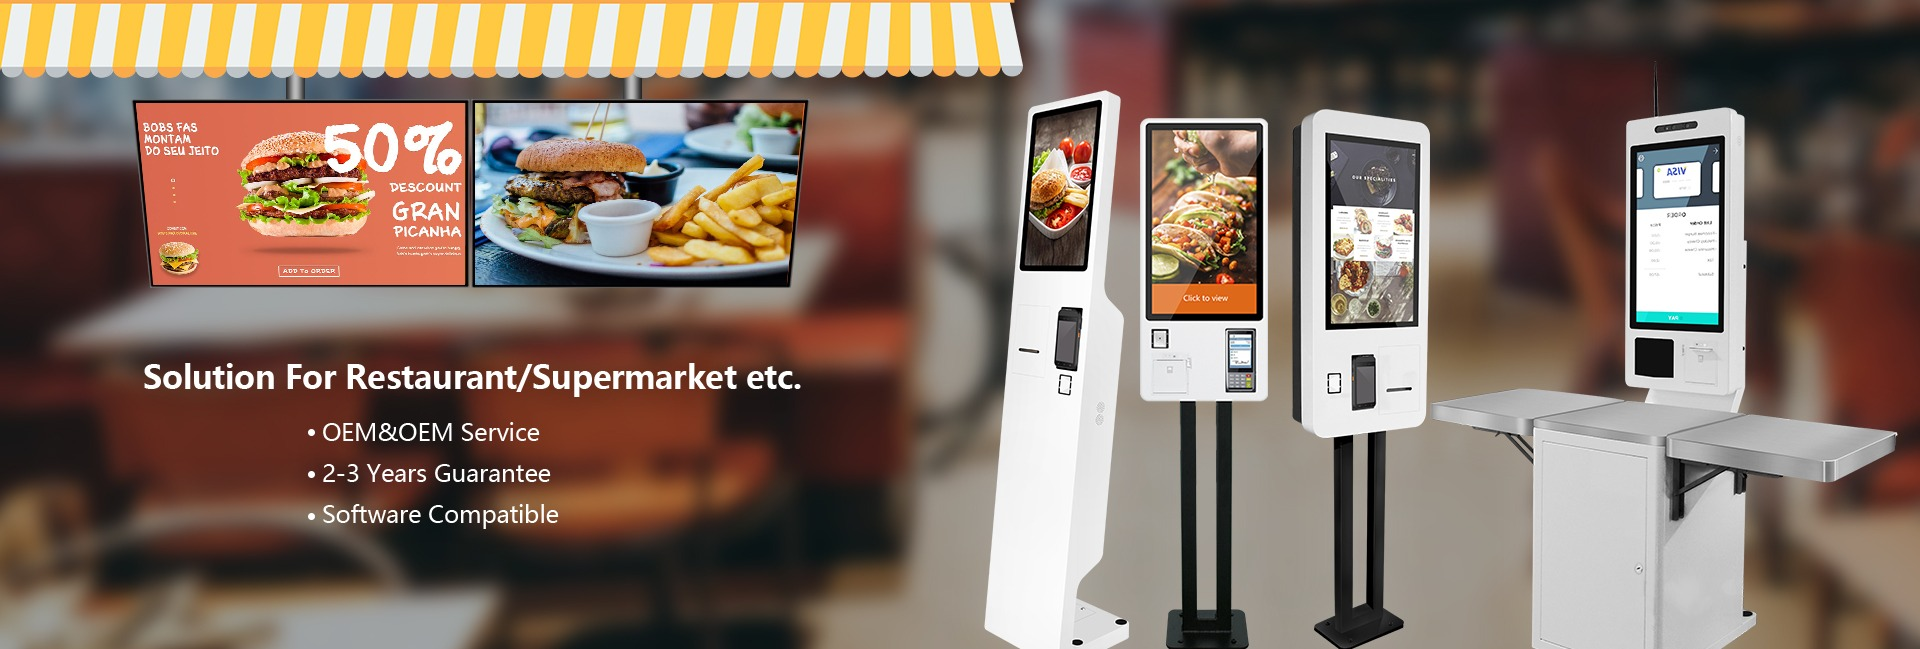 orderonline app Digital Screens and self order kiosk